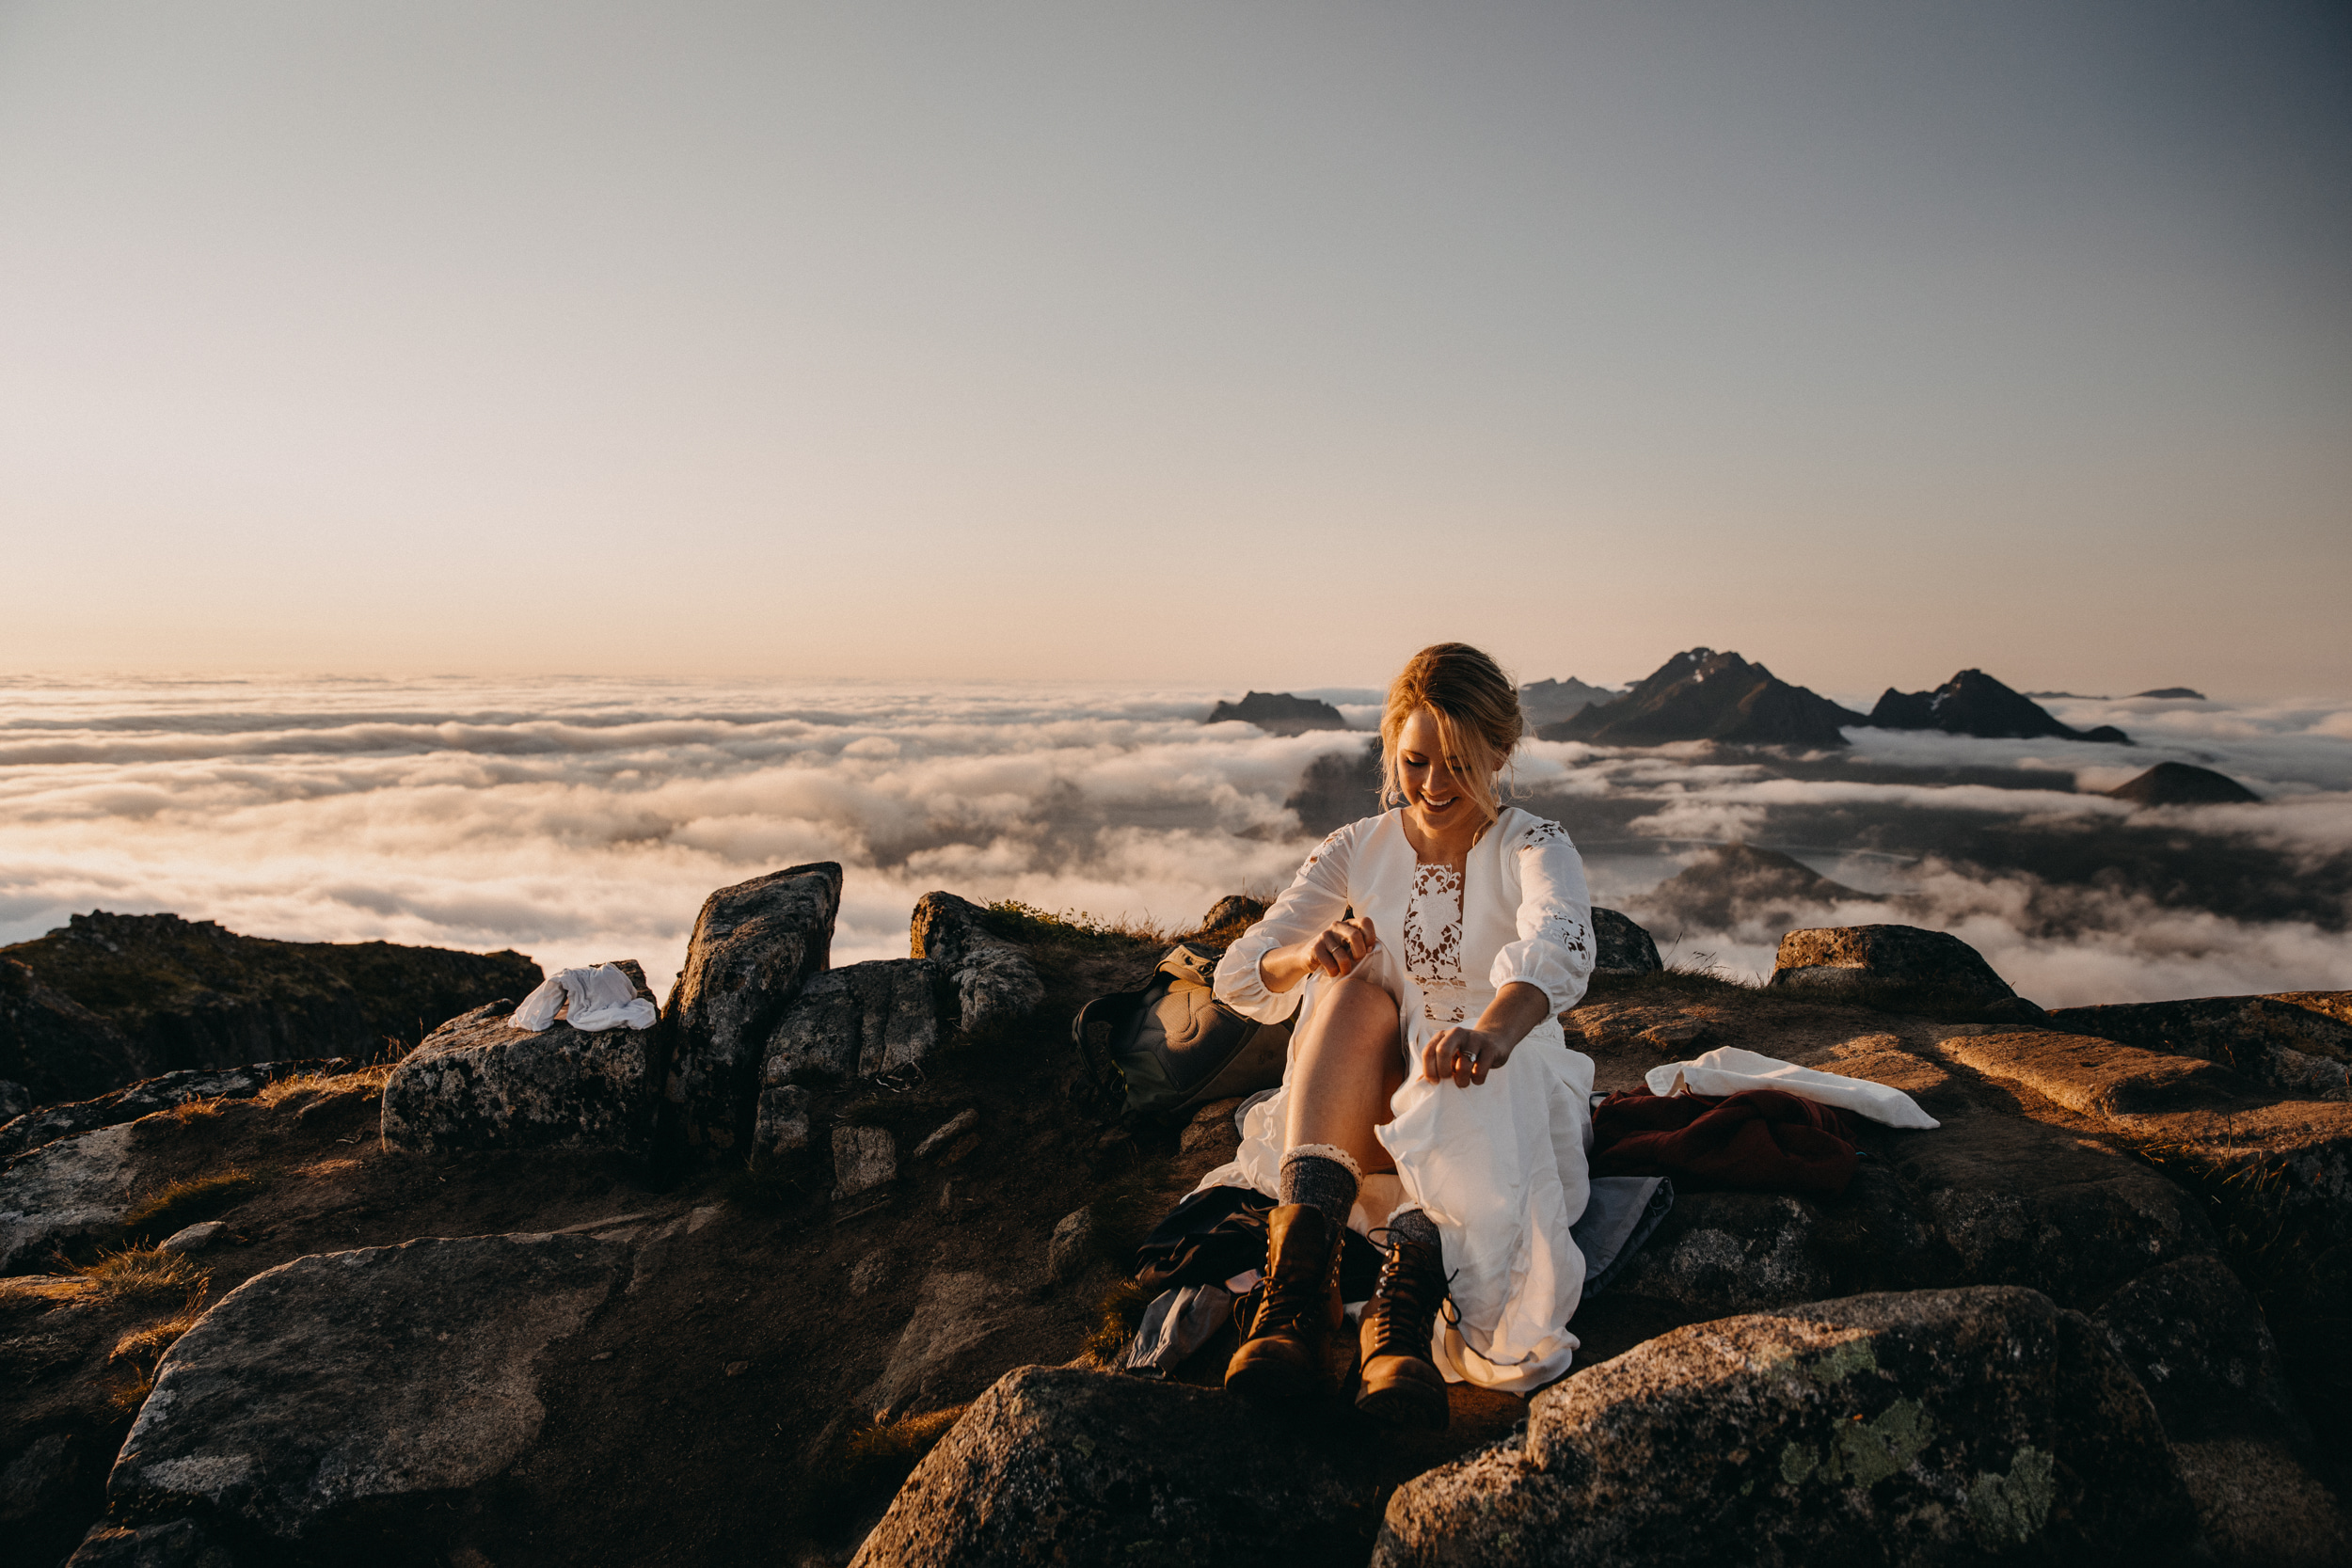 Bride at sunset on Aurland mountain top - photo by Christin Eide